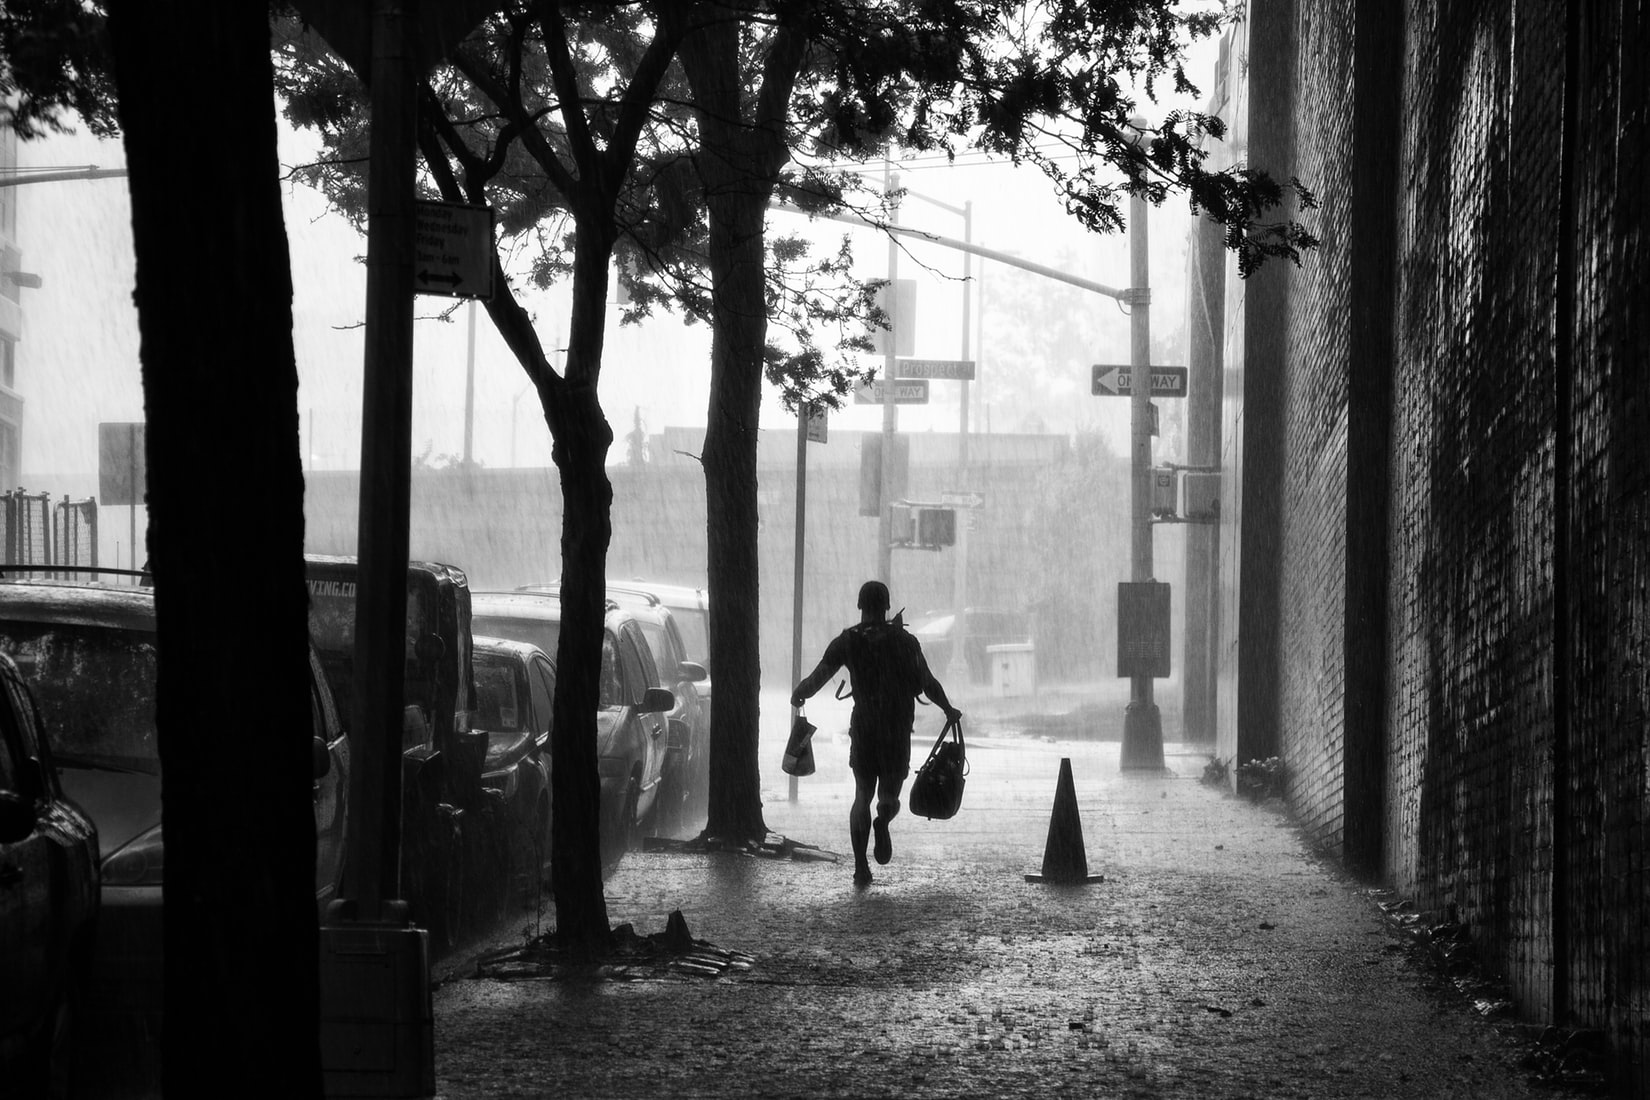 Man holding bags and running beside building on sidewalk